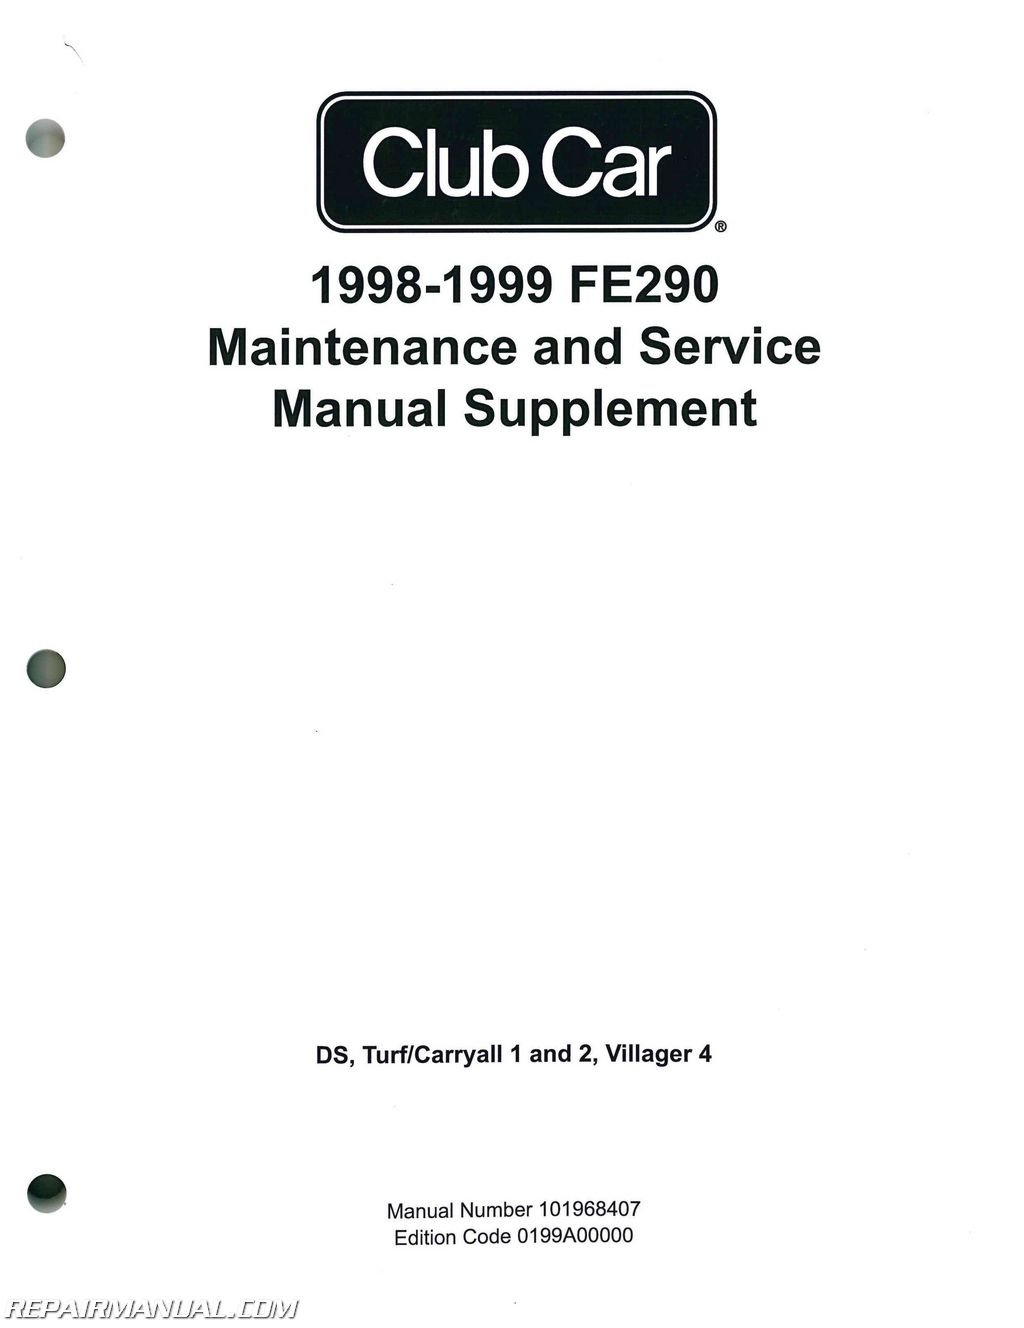 101968407 1998-1999 Club Car FE290 Maintenance And Service Manual  Supplement: Manufacturer: Amazon.com: Books